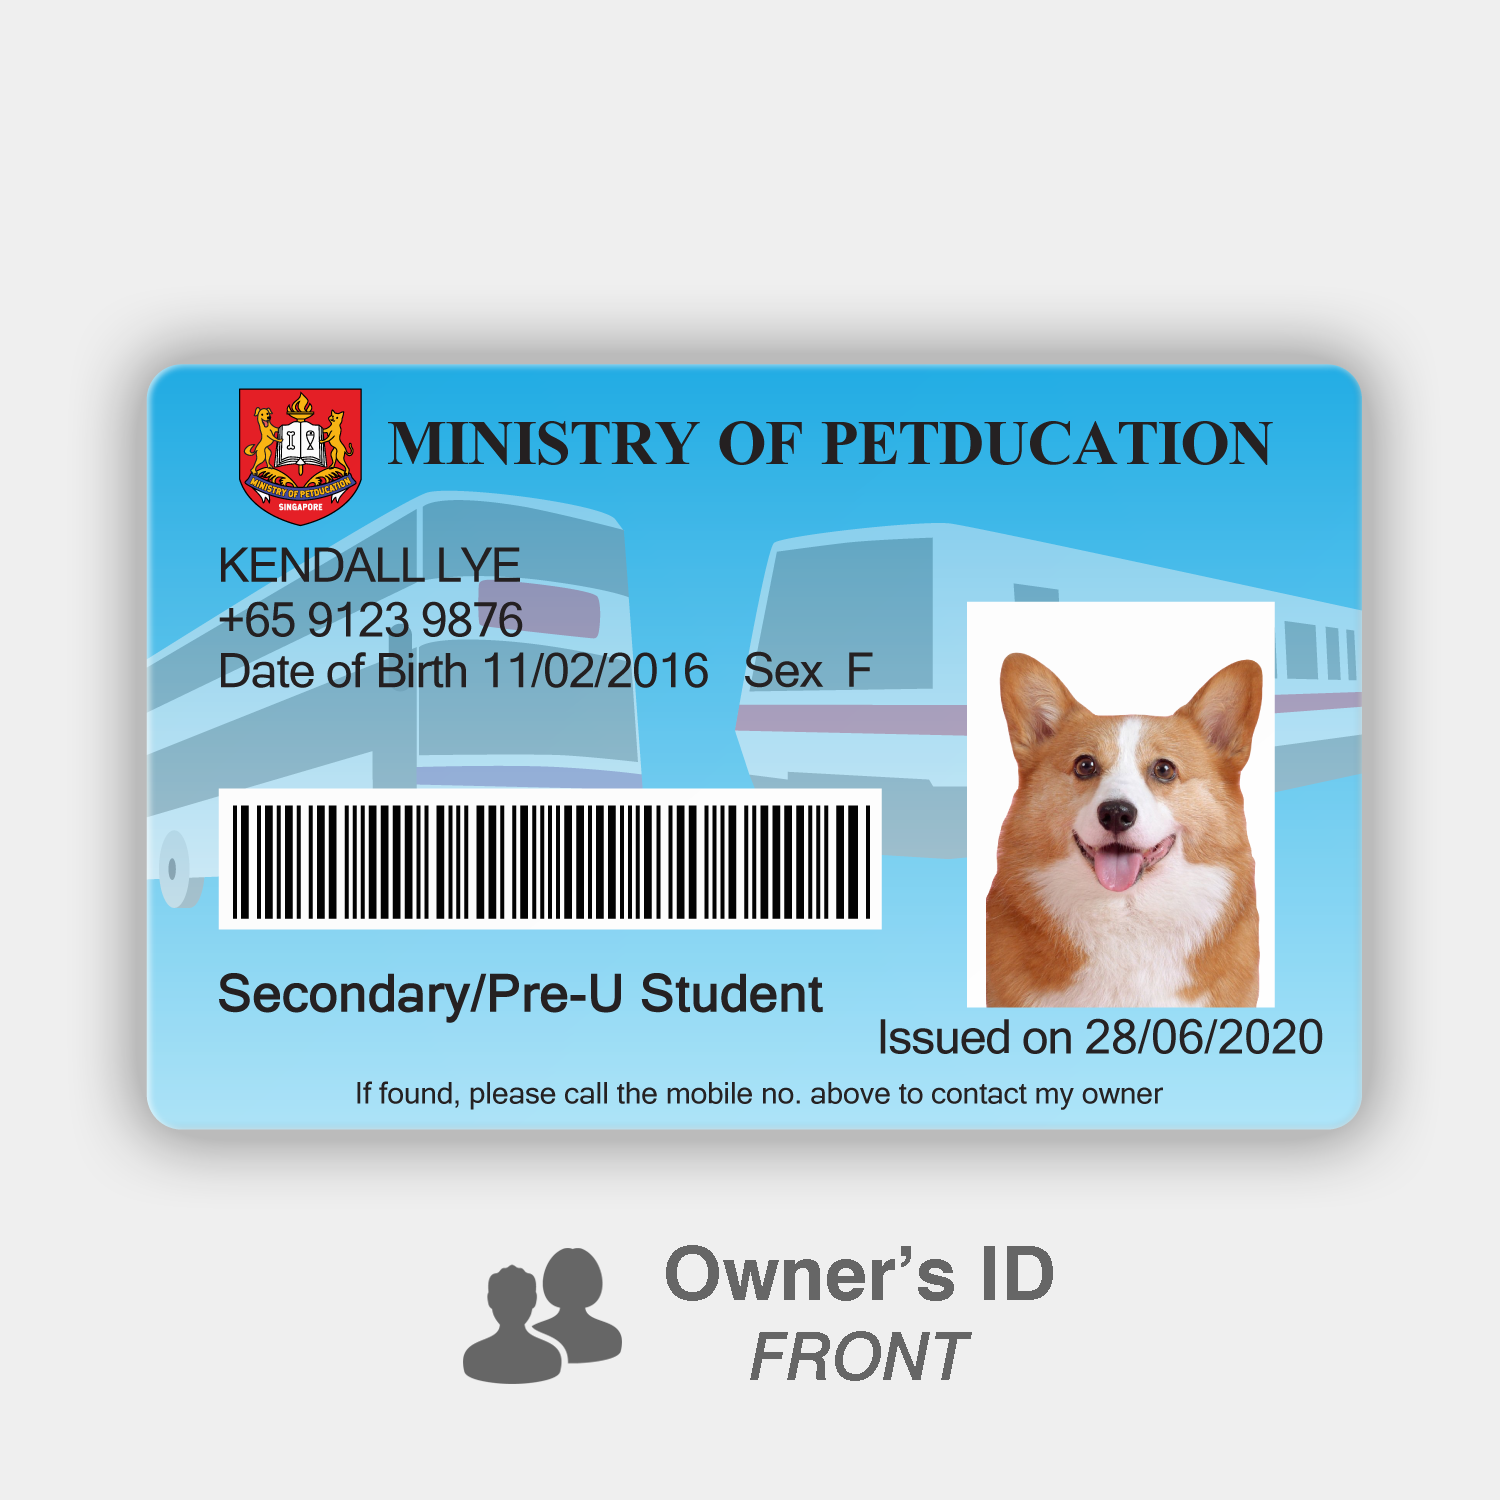 Petducation Secondary/Pre-U Student Pass - Owner's ID (Front)